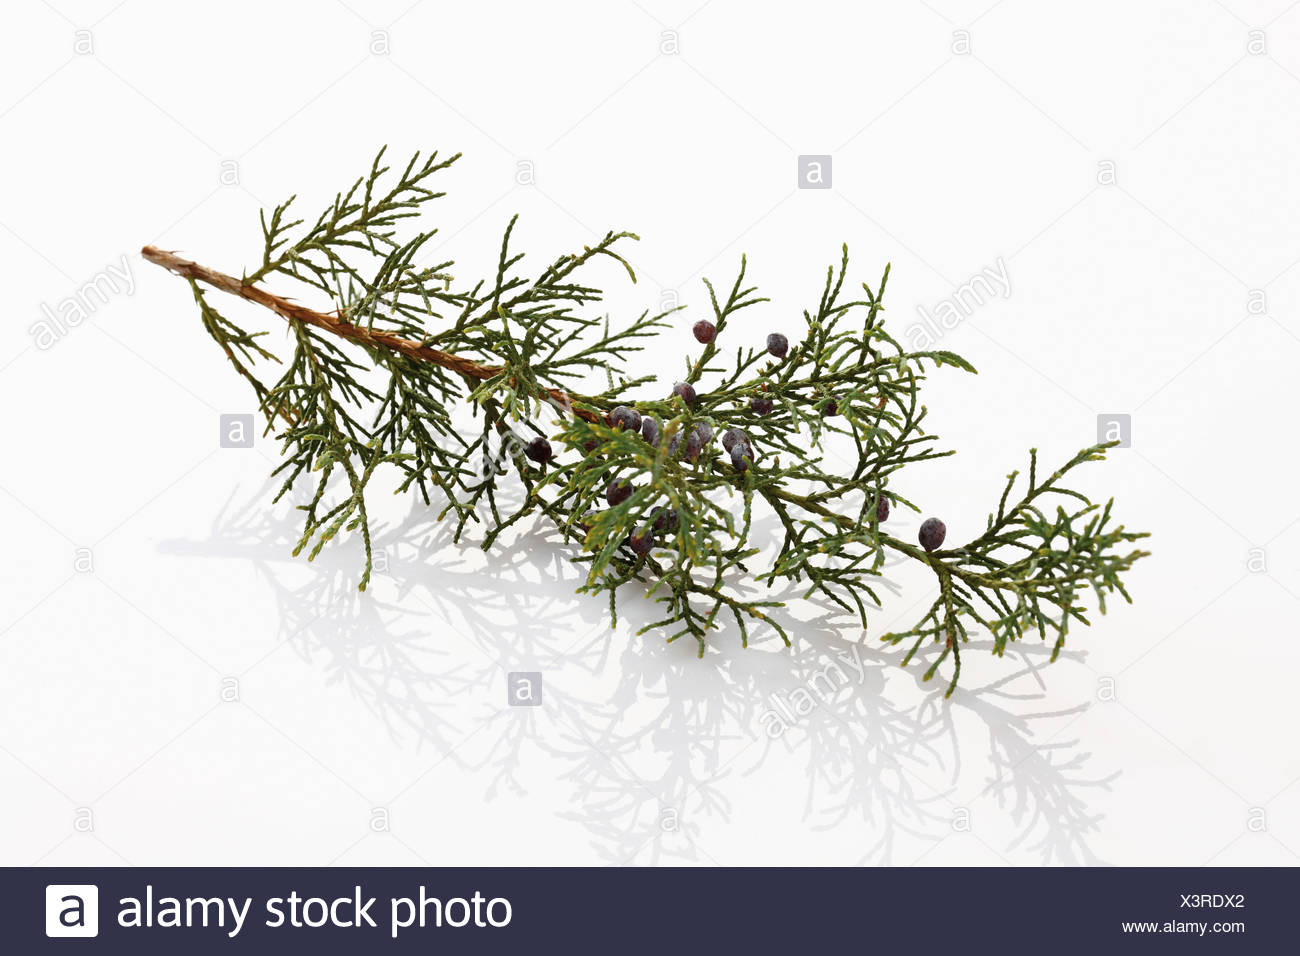 Twig of common juniper with berries, close-up - Stock Image